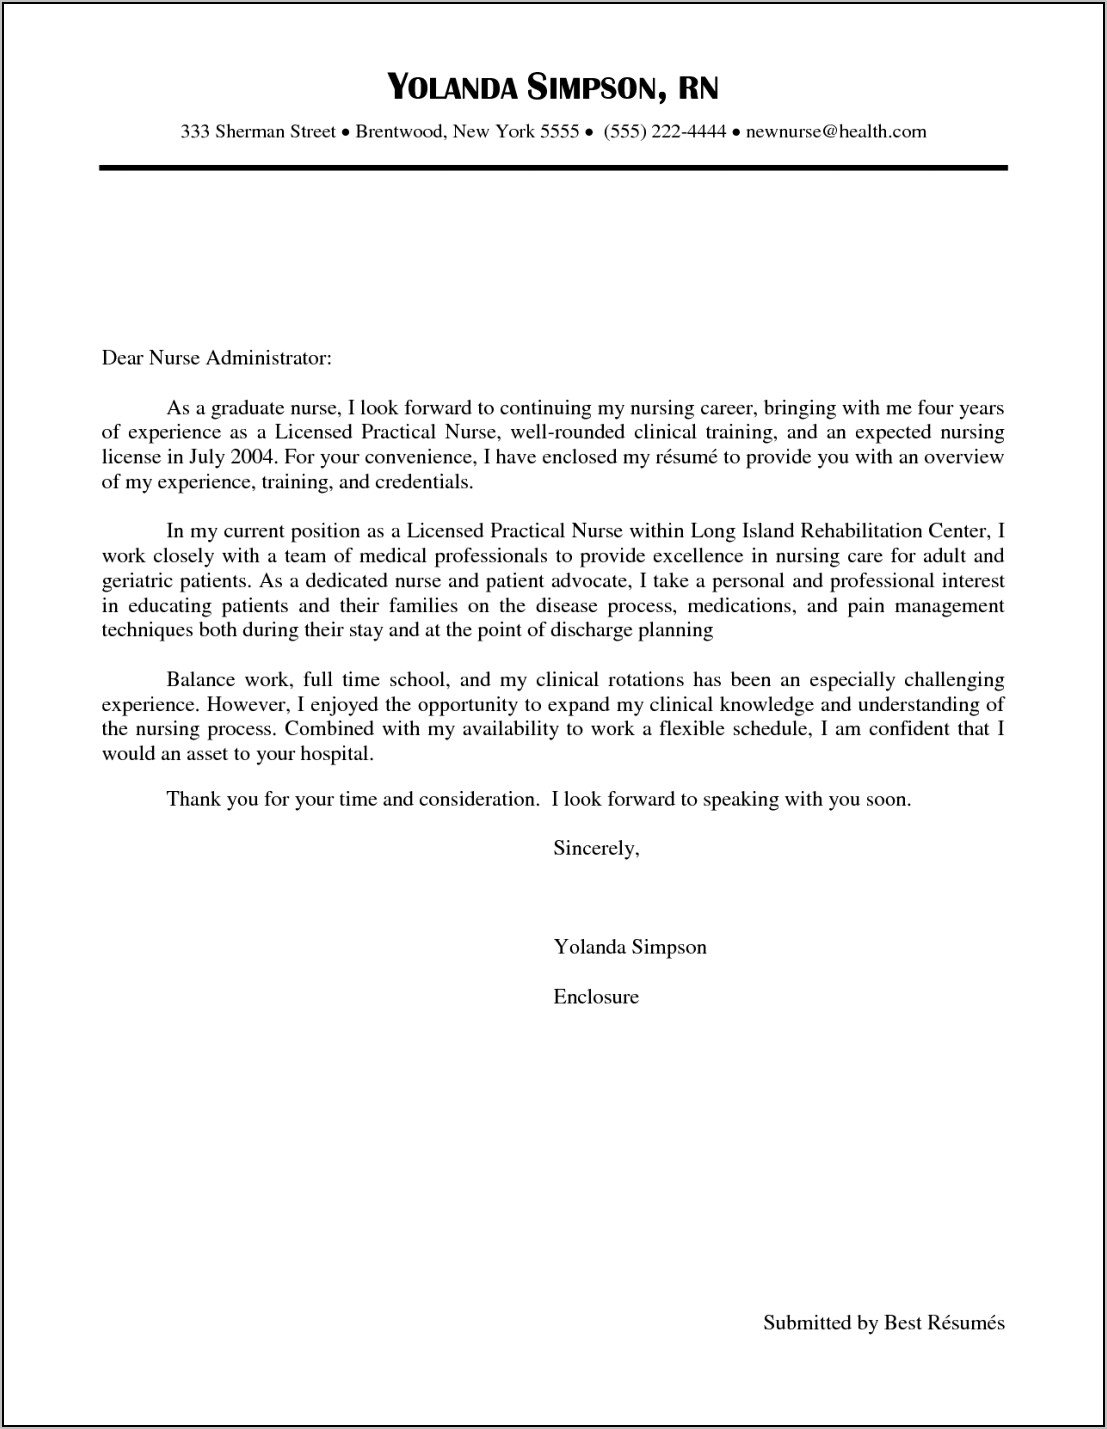 Examples Of Nursing Job Cover Letters